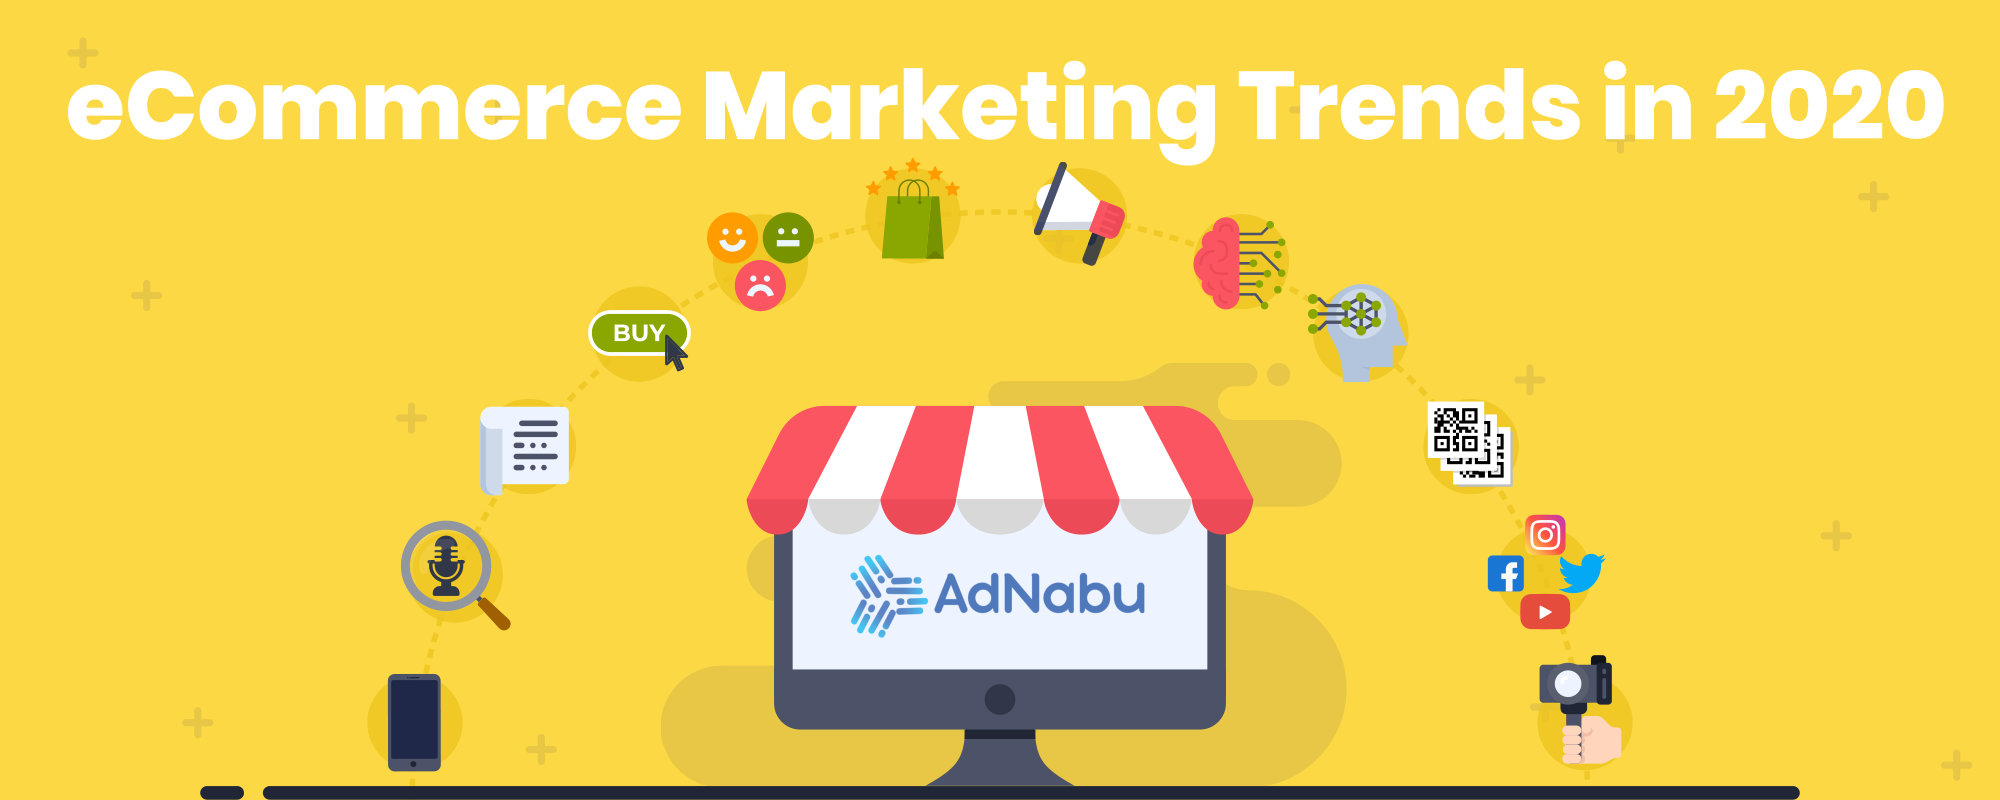 ecommerce_marketing_trends_2020_adnabu_V1